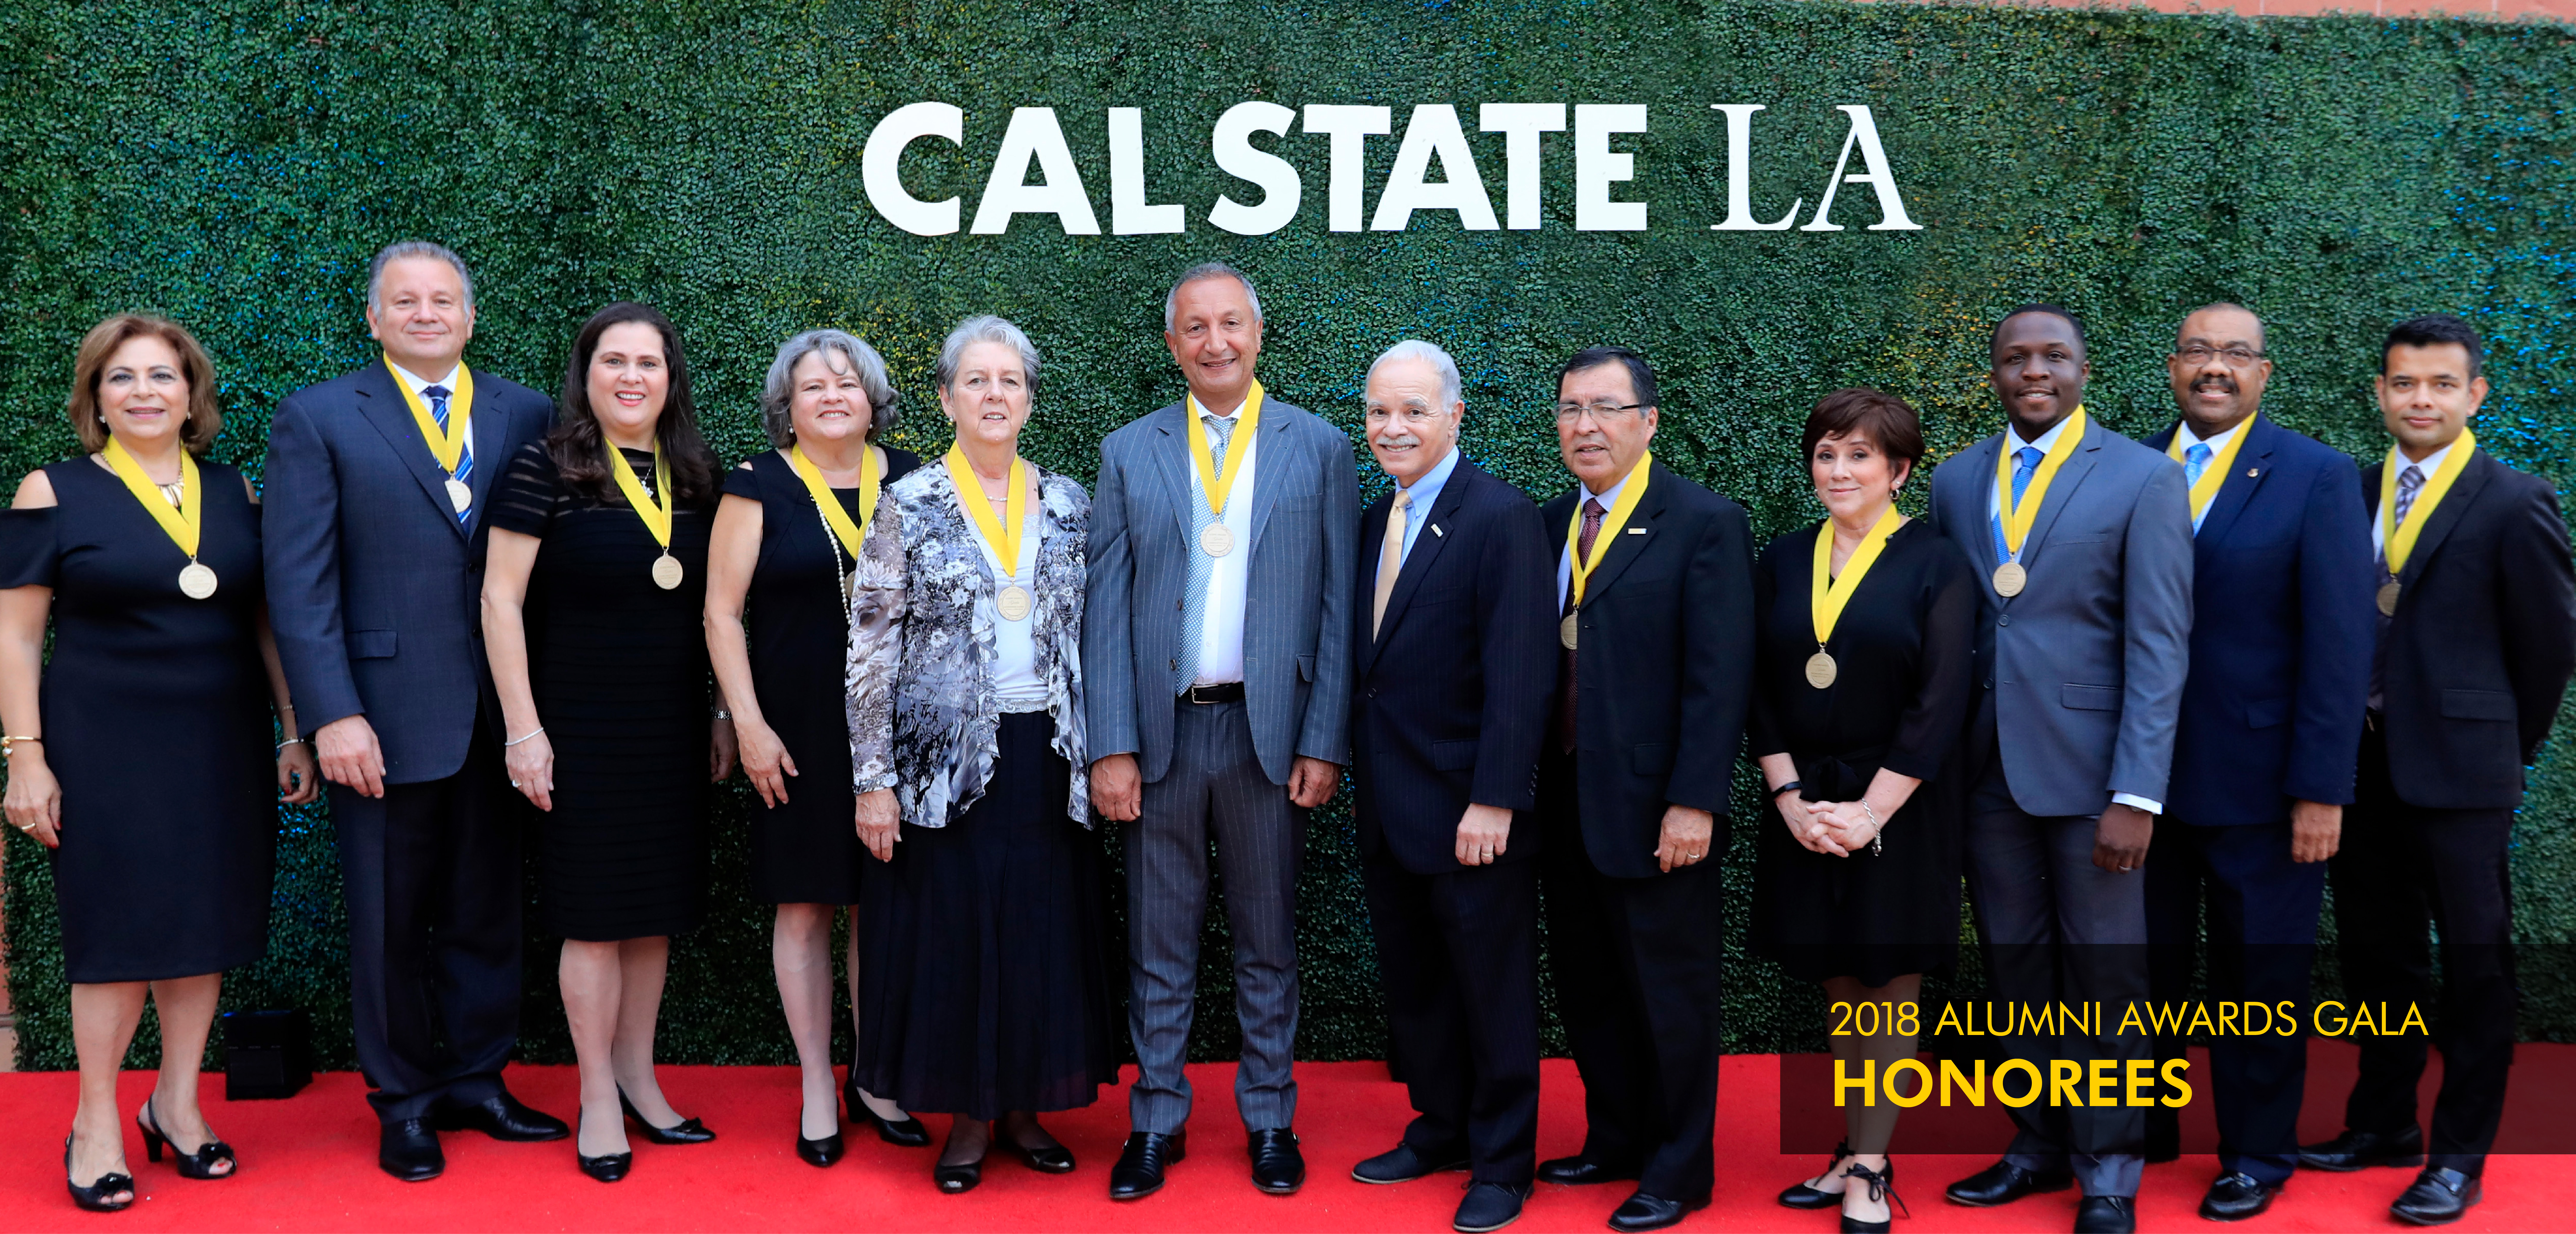 Group of Alumni Awards Gala honorees with President Covino